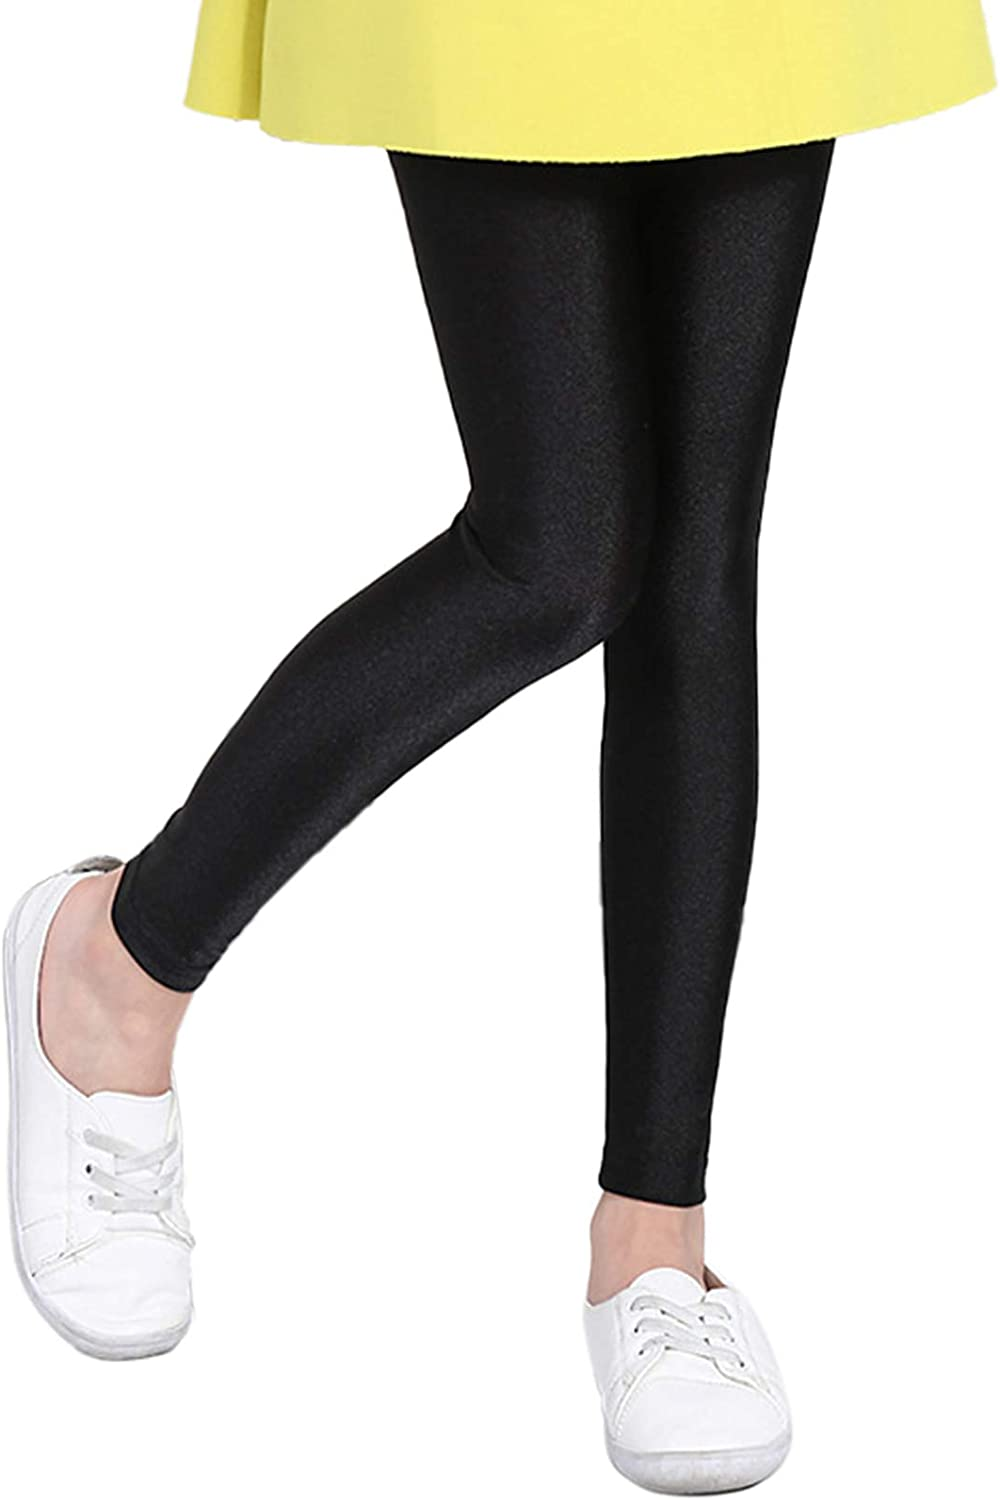 Baby Toddler Girls 100% quality warranty! Solid 2021 spring and summer new Leggings Full Shiny Stretch Length Casu